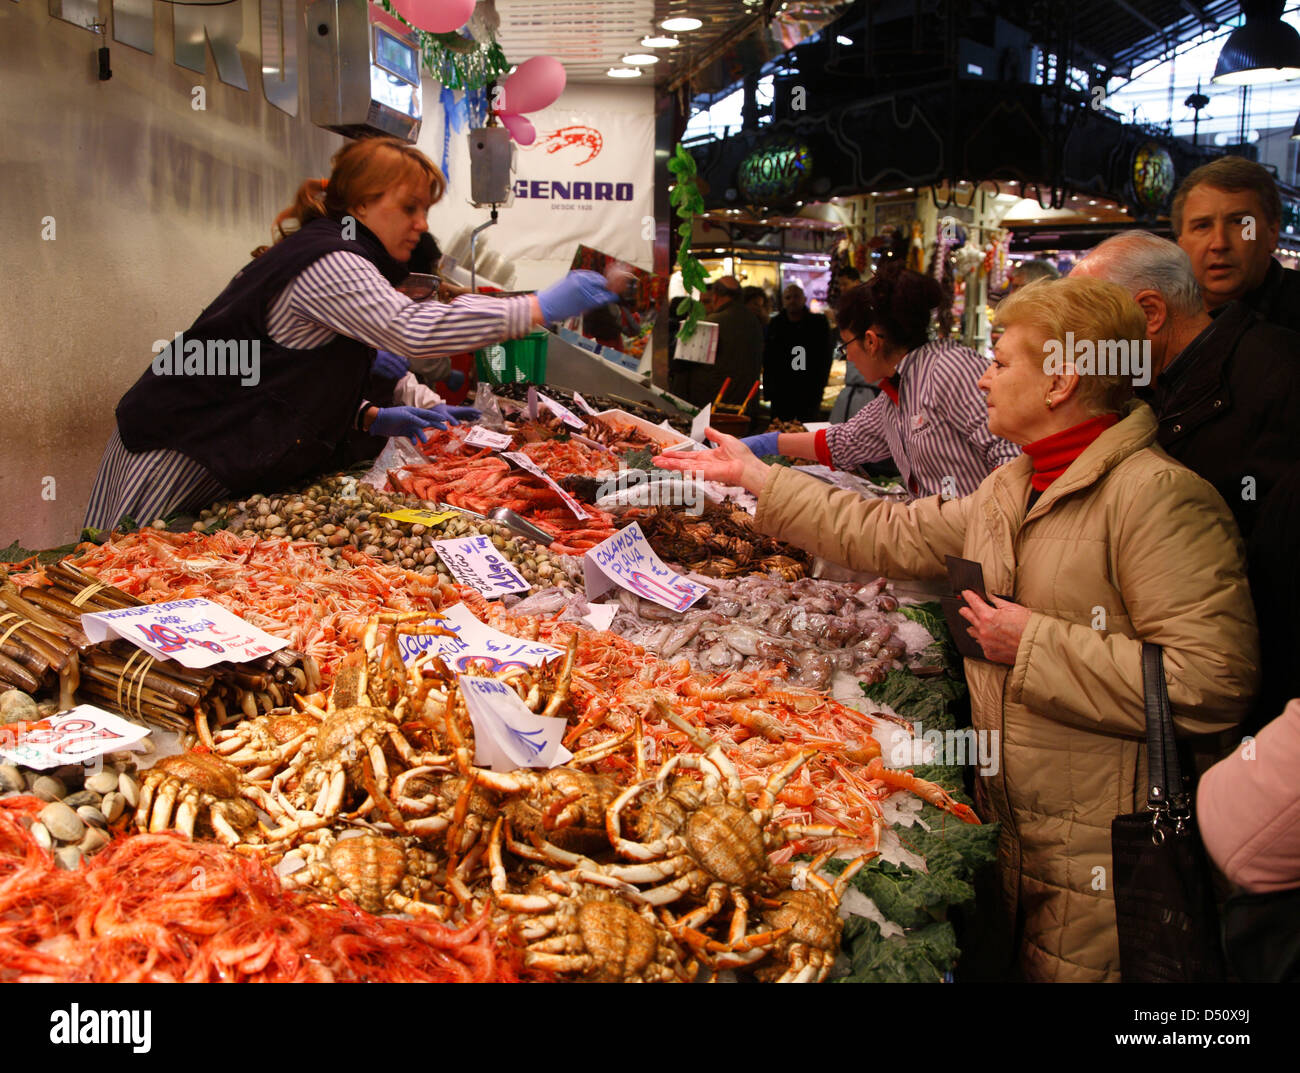 Market hall  MERCAT de la BOQUERIA, Stall with fish, Barcelona, Spain - Stock Image